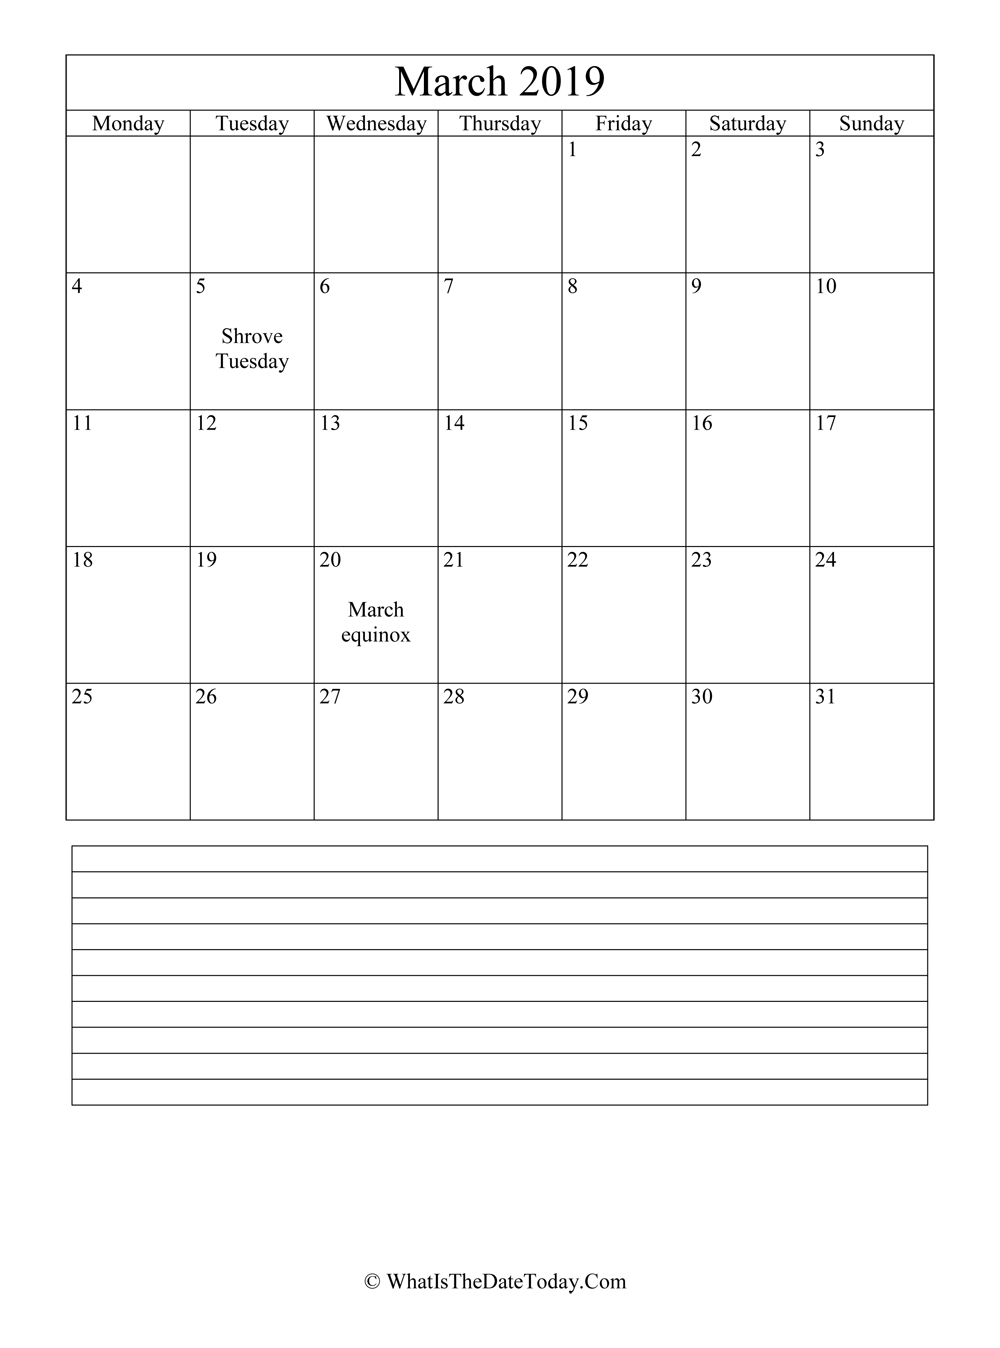 March 2019 Calendar Editable With Notes Space Vertical Layout